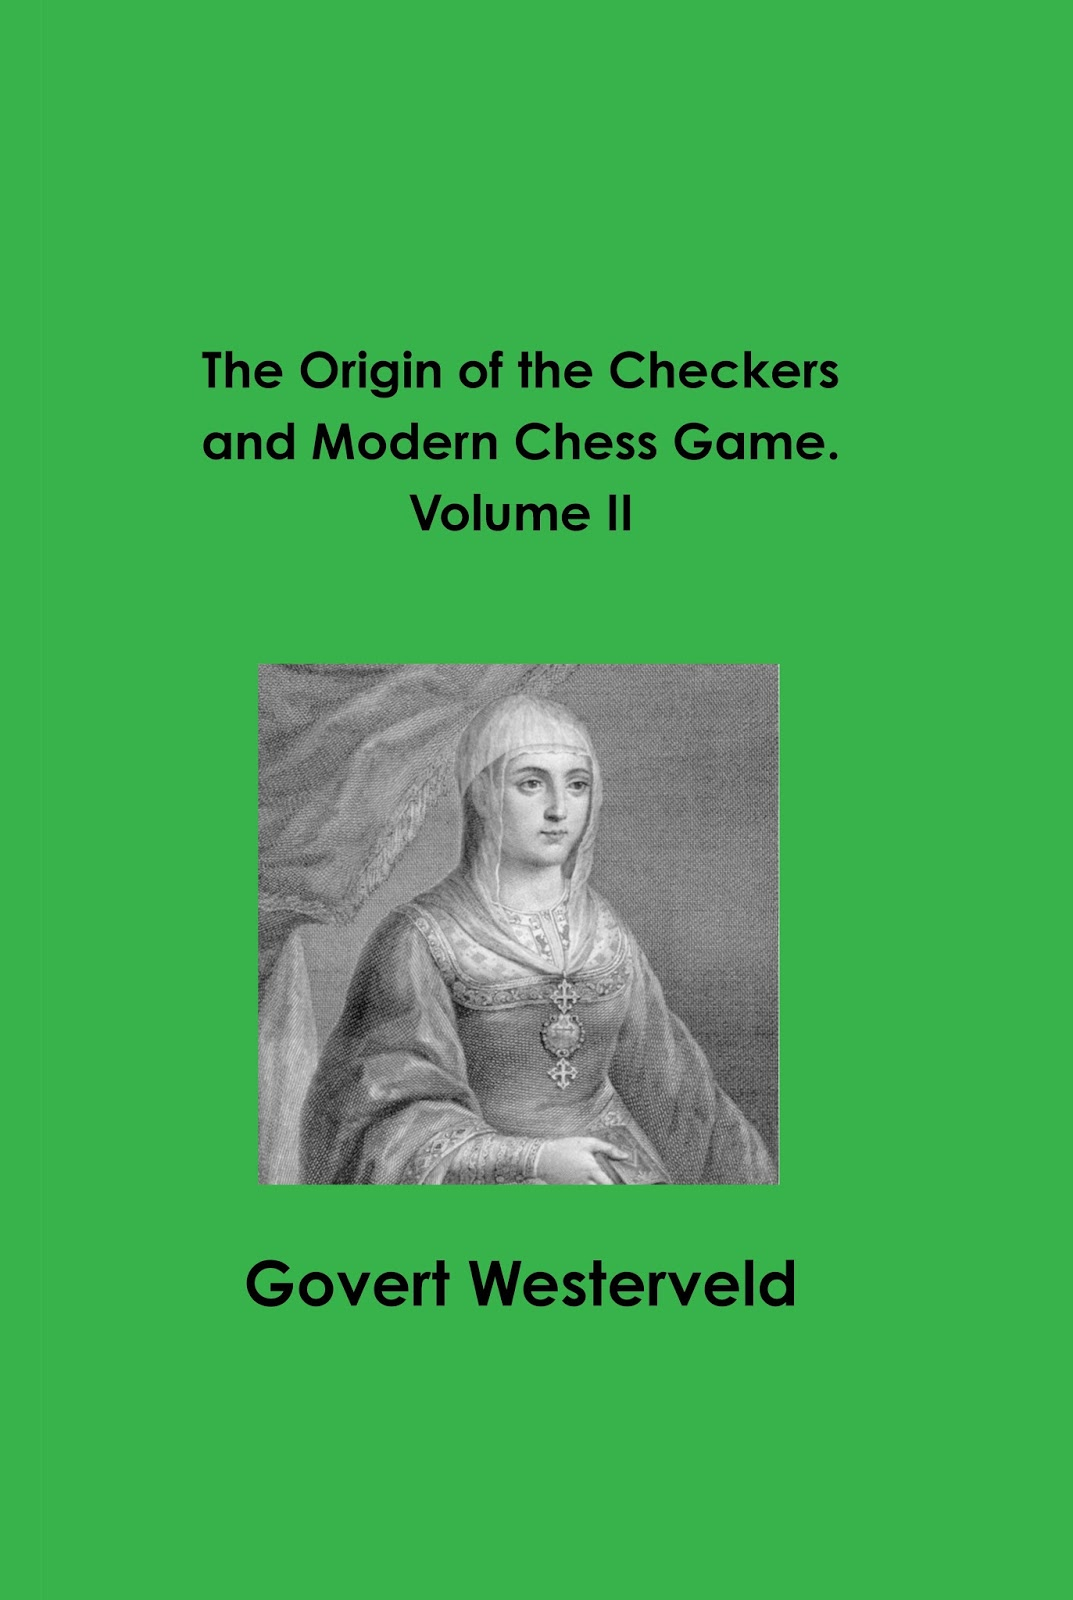 History of draughts checkers the origin of the checkers and modern chess game volume ii 300 pages isbn 978 0 244 04257 8 2017 fandeluxe Image collections